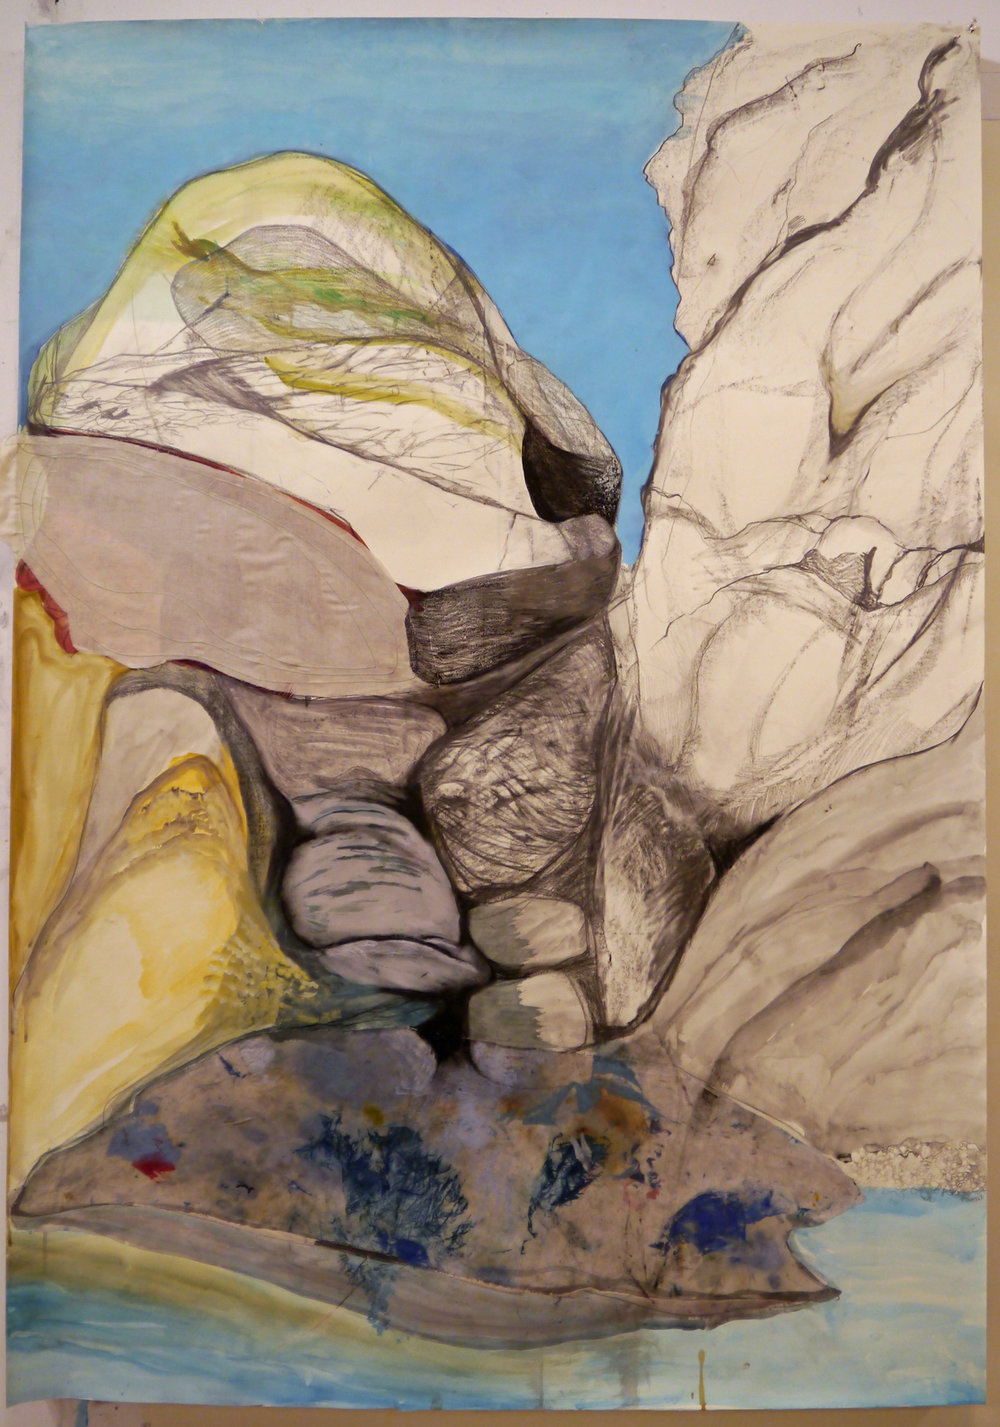 """Rock Dreaming of Rocks, Acrylic, graphite and stitched fabric on paper, 60"""" x 42"""""""